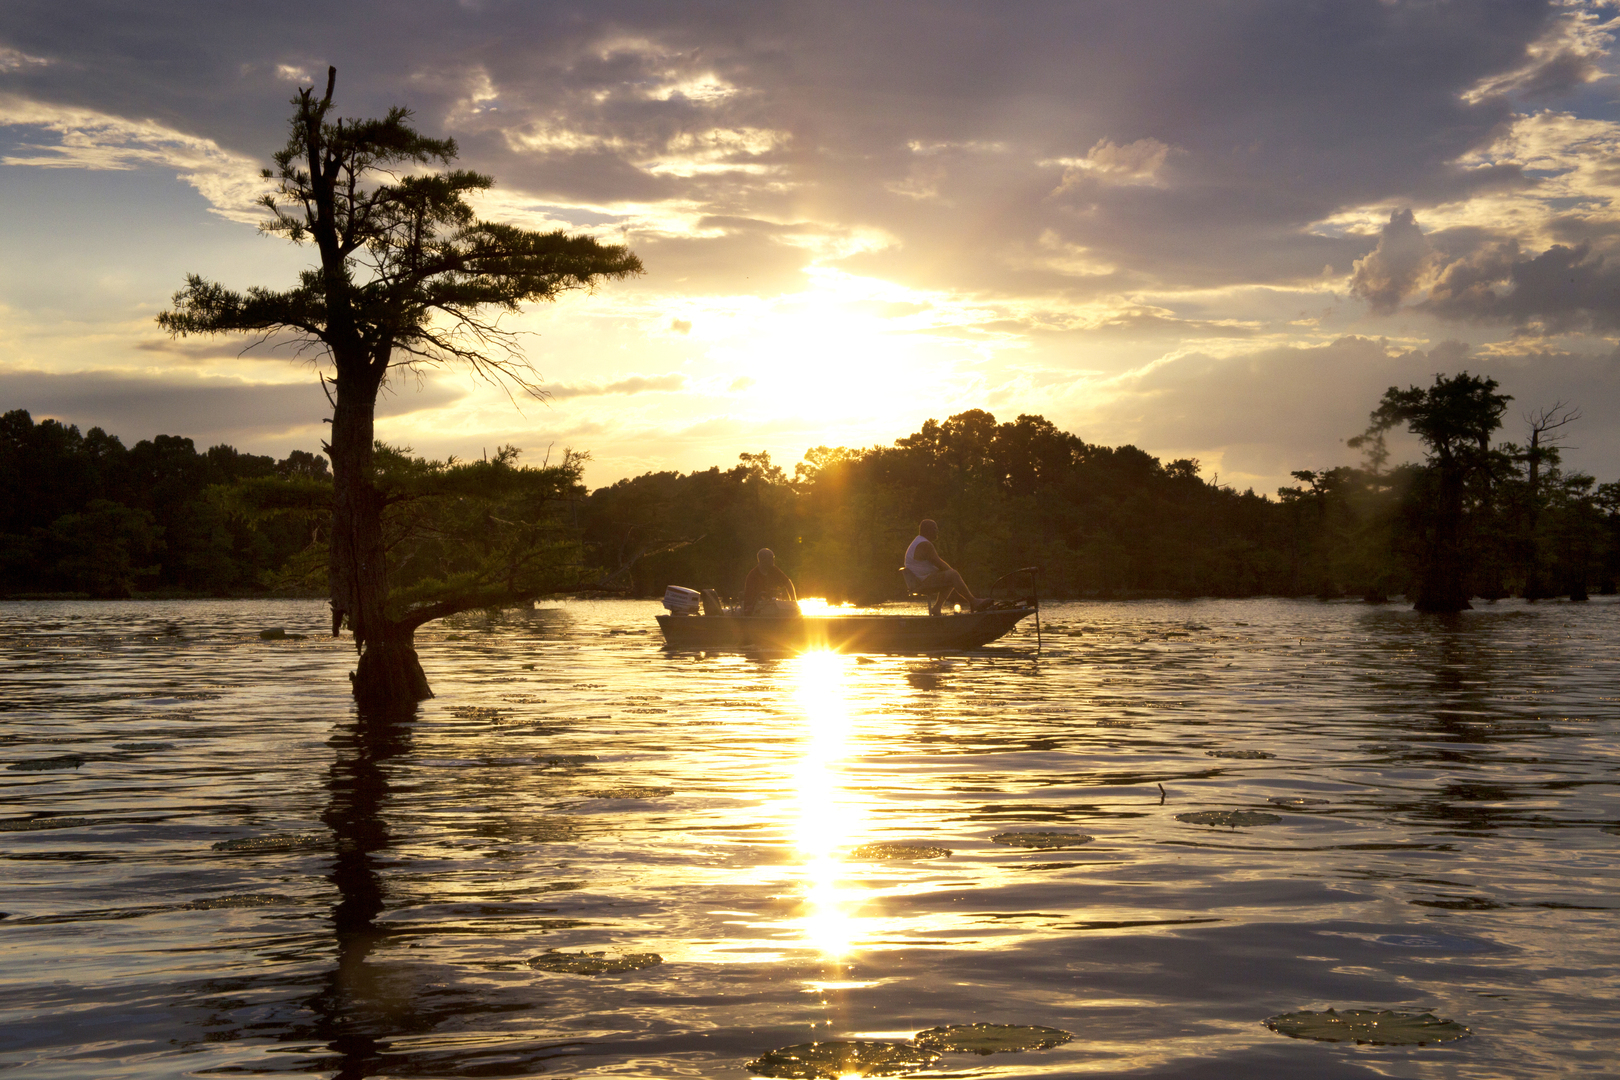 March Is the Month for Tennessee's Reelfoot Lake Crappie - Tennessee